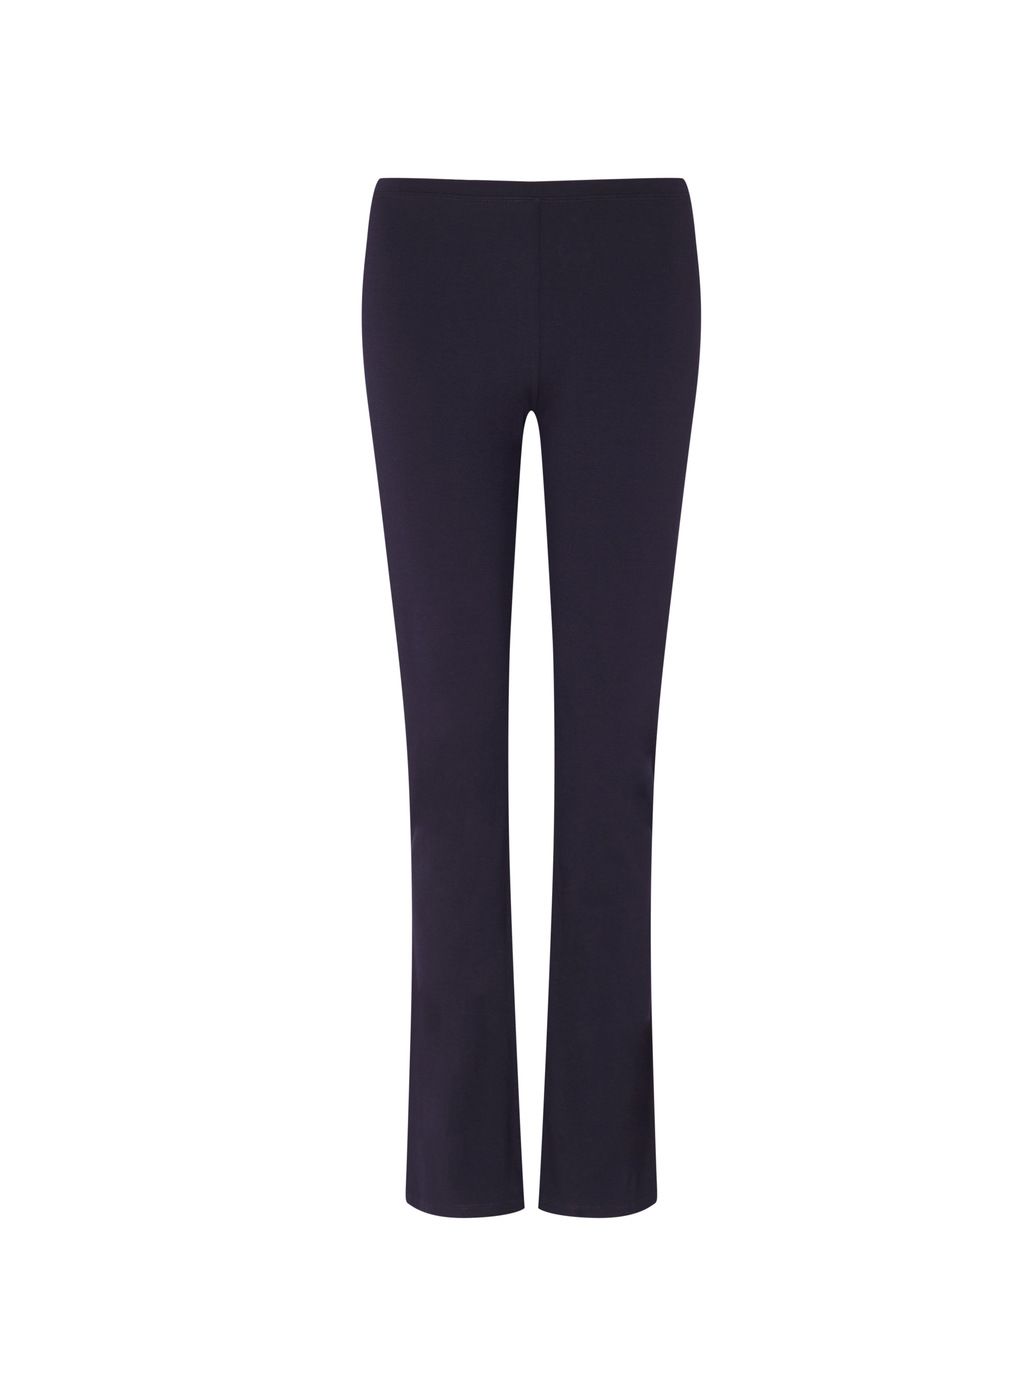 Womenswear Whitson Lounge Pants - length: standard; pattern: plain; waist detail: elasticated waist; waist: mid/regular rise; predominant colour: navy; occasions: casual; fibres: cotton - stretch; fit: straight leg; pattern type: fabric; texture group: jersey - stretchy/drapey; style: standard; wardrobe: basic; season: a/w 2016